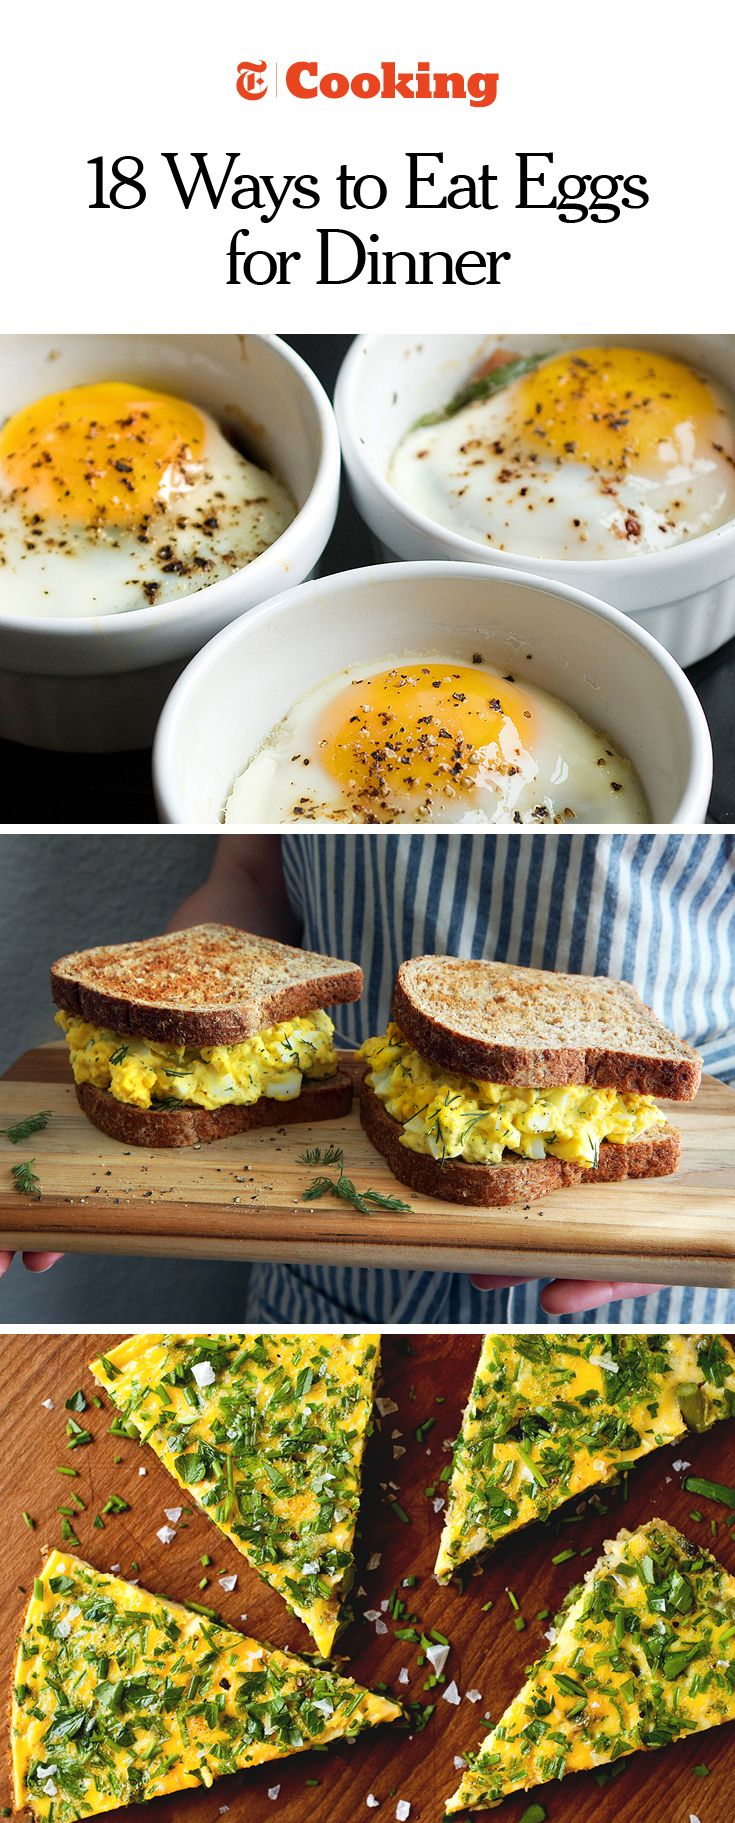 From Mark Bittman's baked egg with prosciutto and tomato (above) to Eli Zabar's egg salad sandwich, here are 18 ways to get more eggs involved in your evening meals. (Photos:  Evan Sung for NYT; Jim Wilson/NYT;